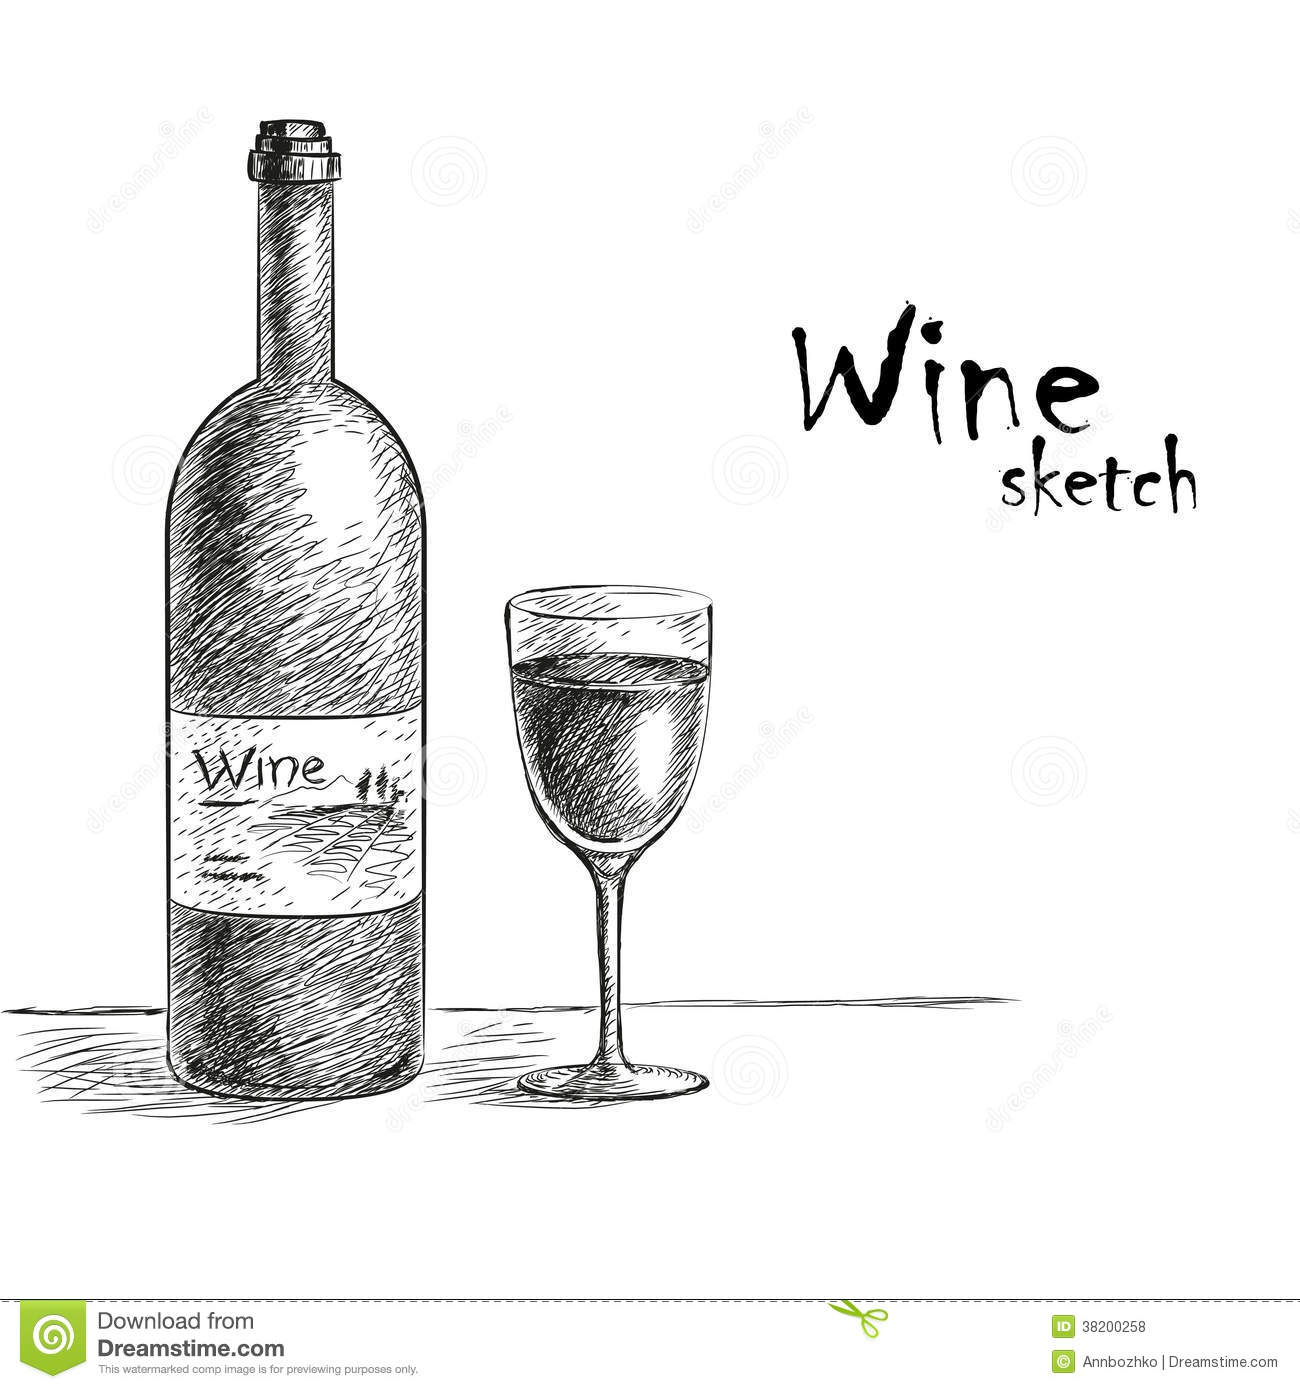 Wine and glass sketch stock vector. Illustration of ornate